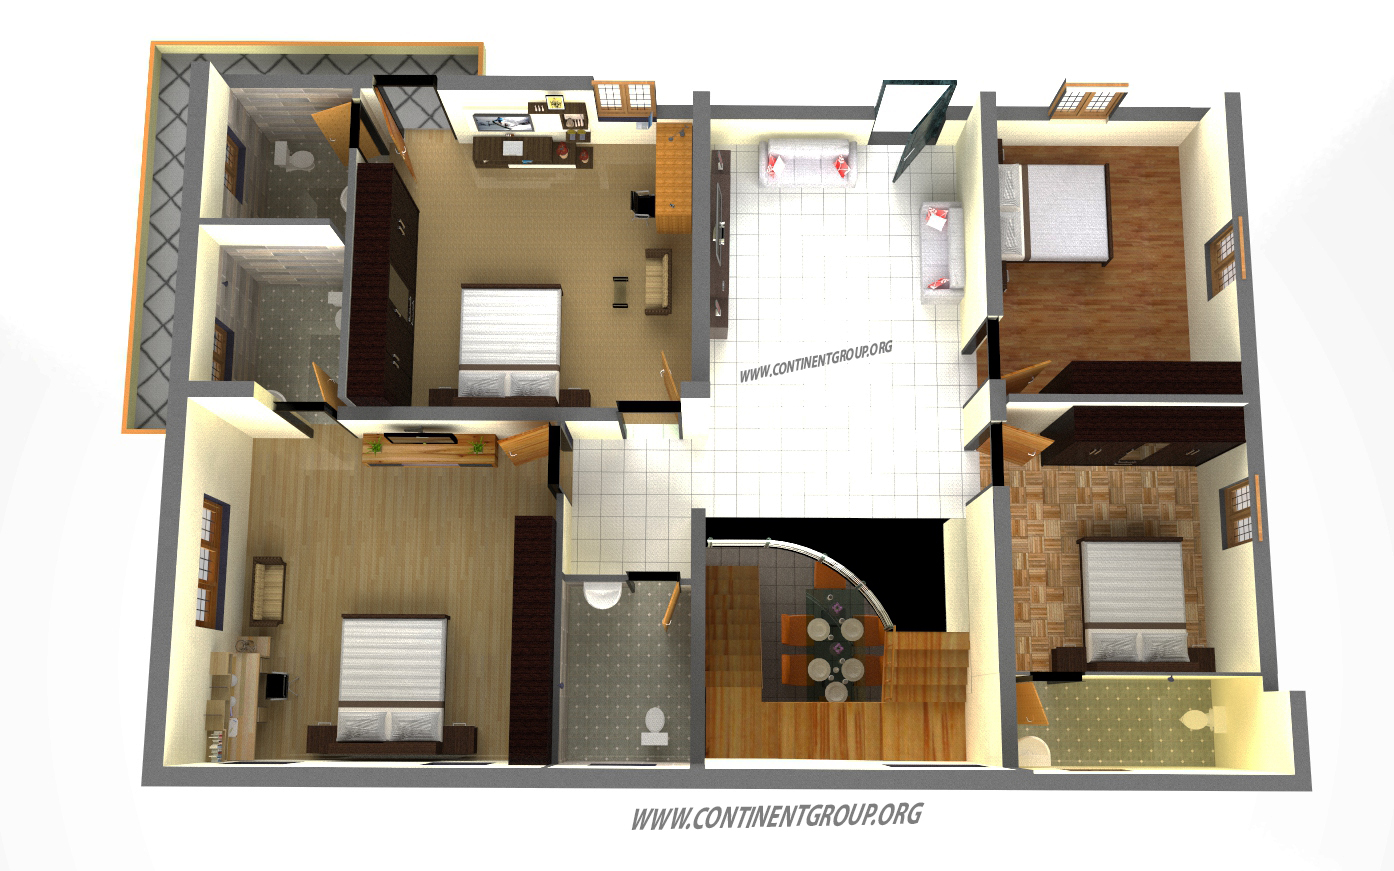 Residential Building Plan In Bangalore Continent Group